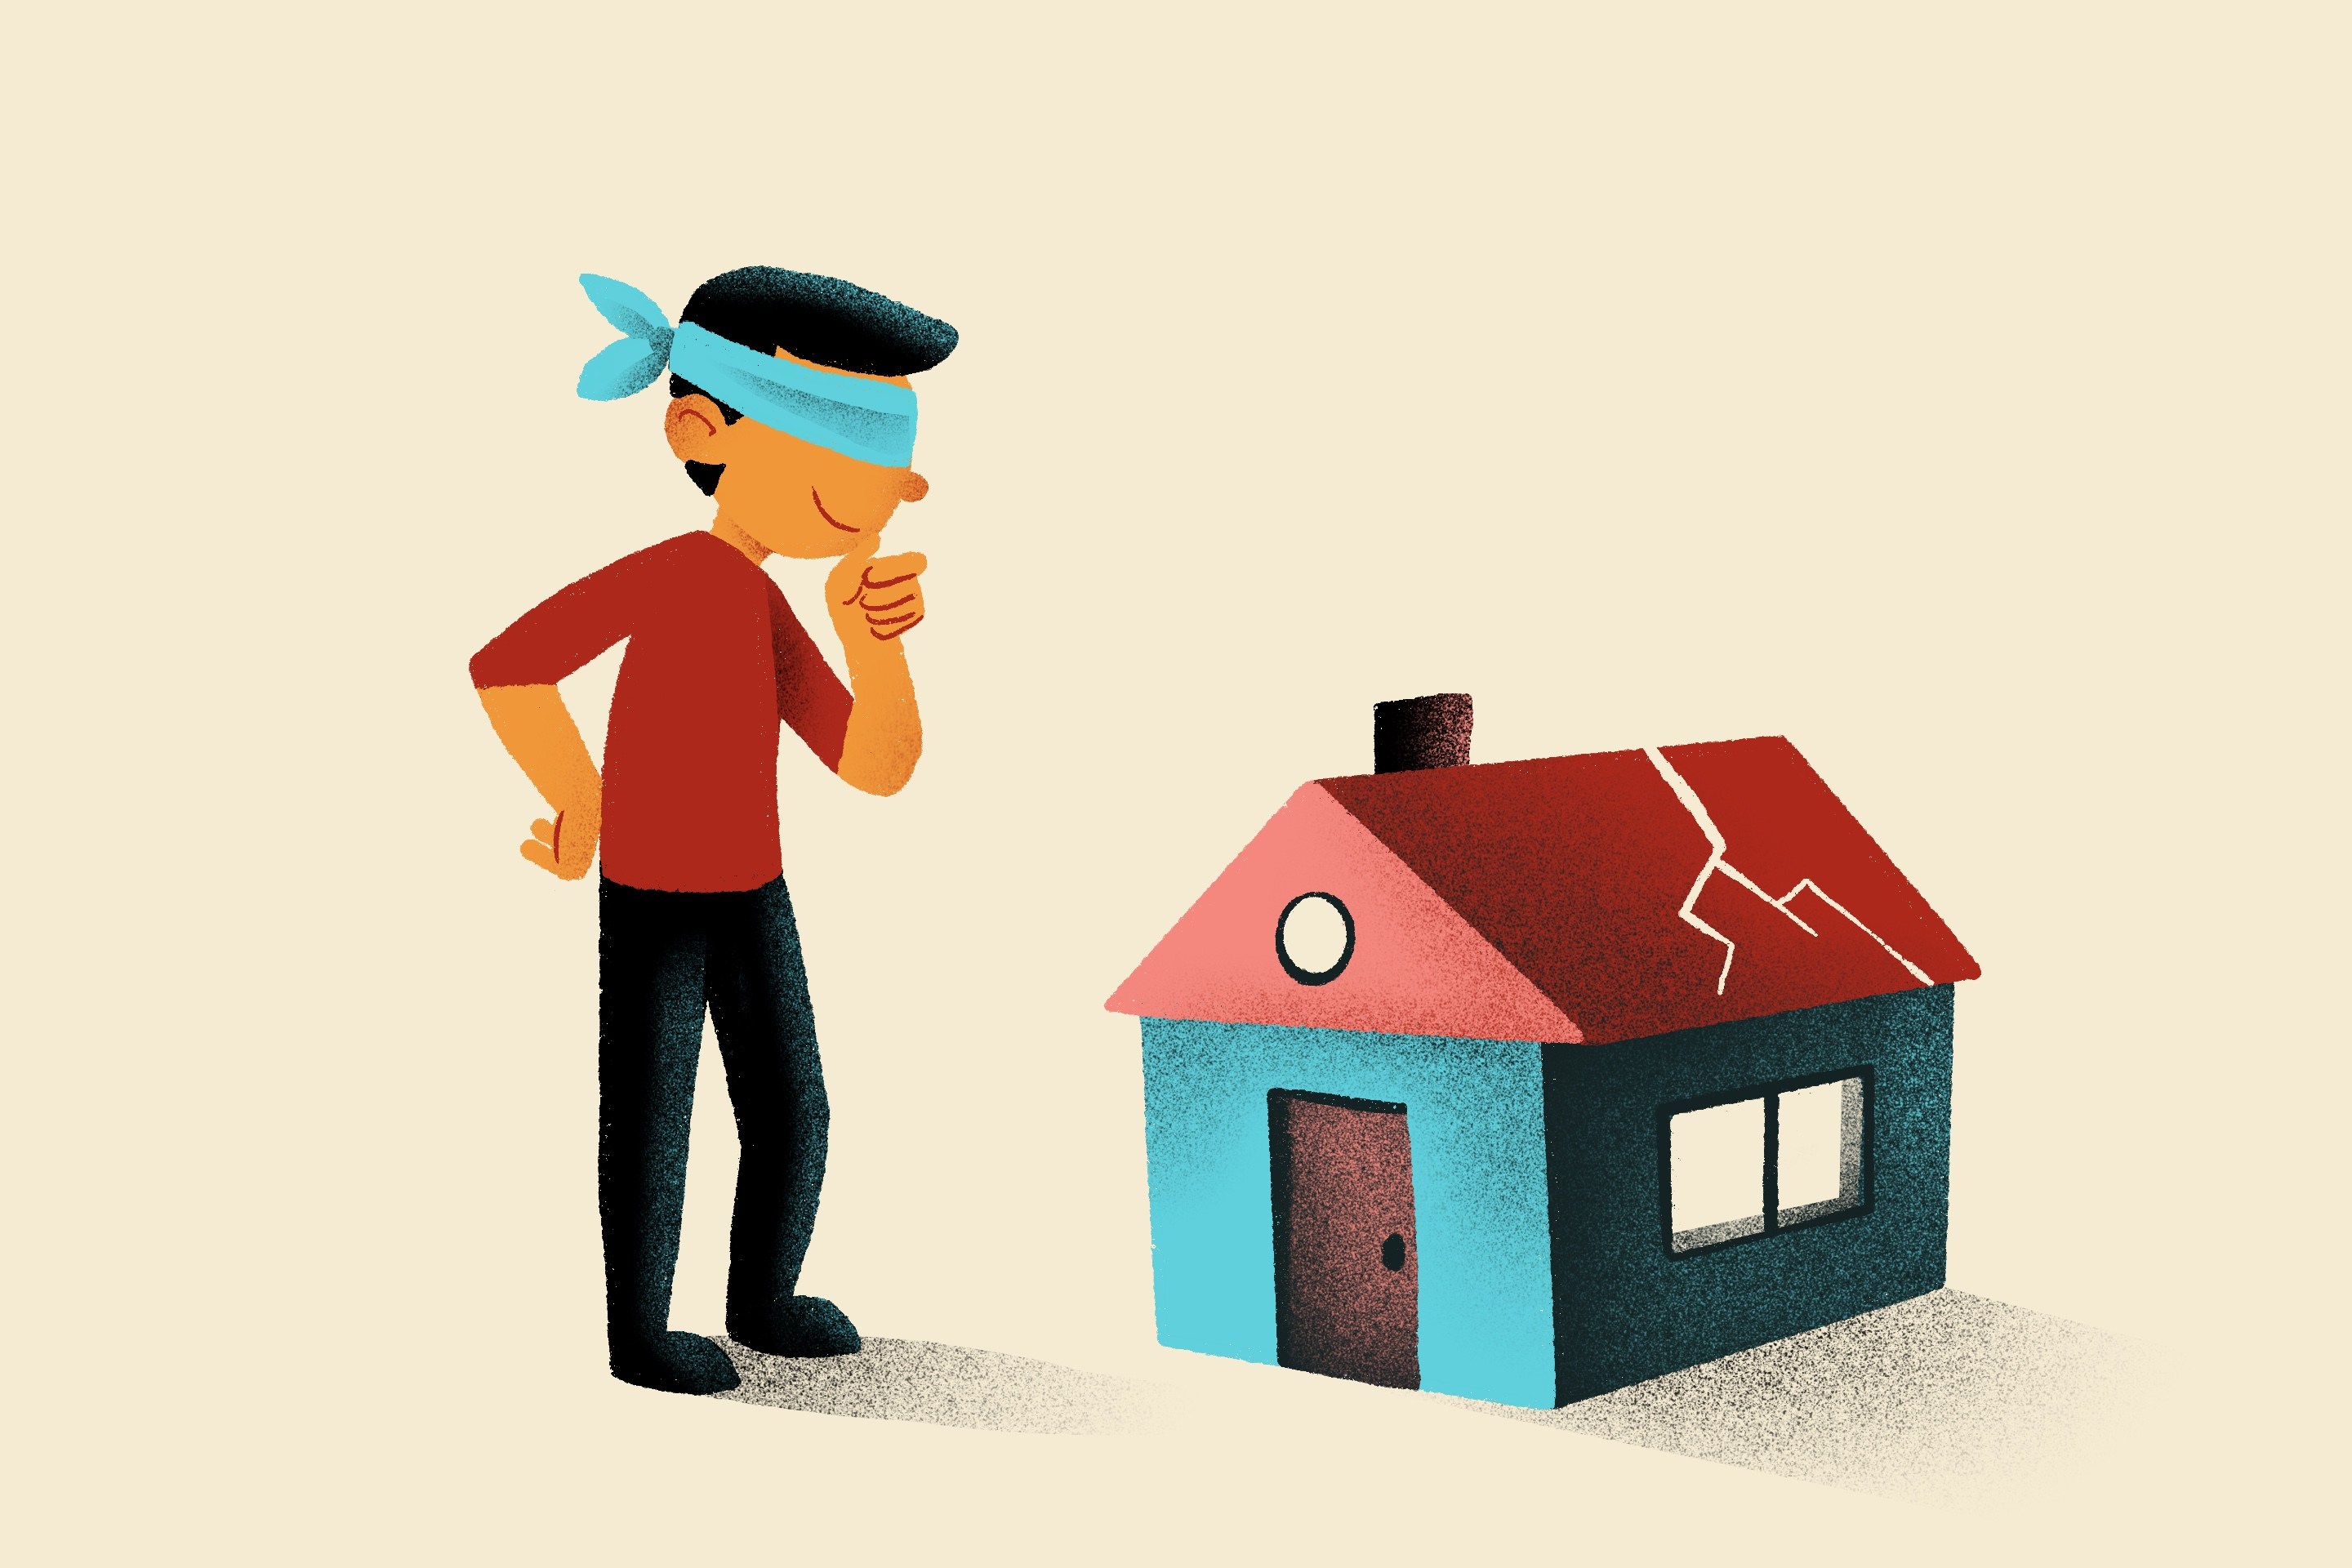 More Buyers Are Skipping Home Inspections. Tales of Bats, Termites and Asbestos Should Make You Think Twice